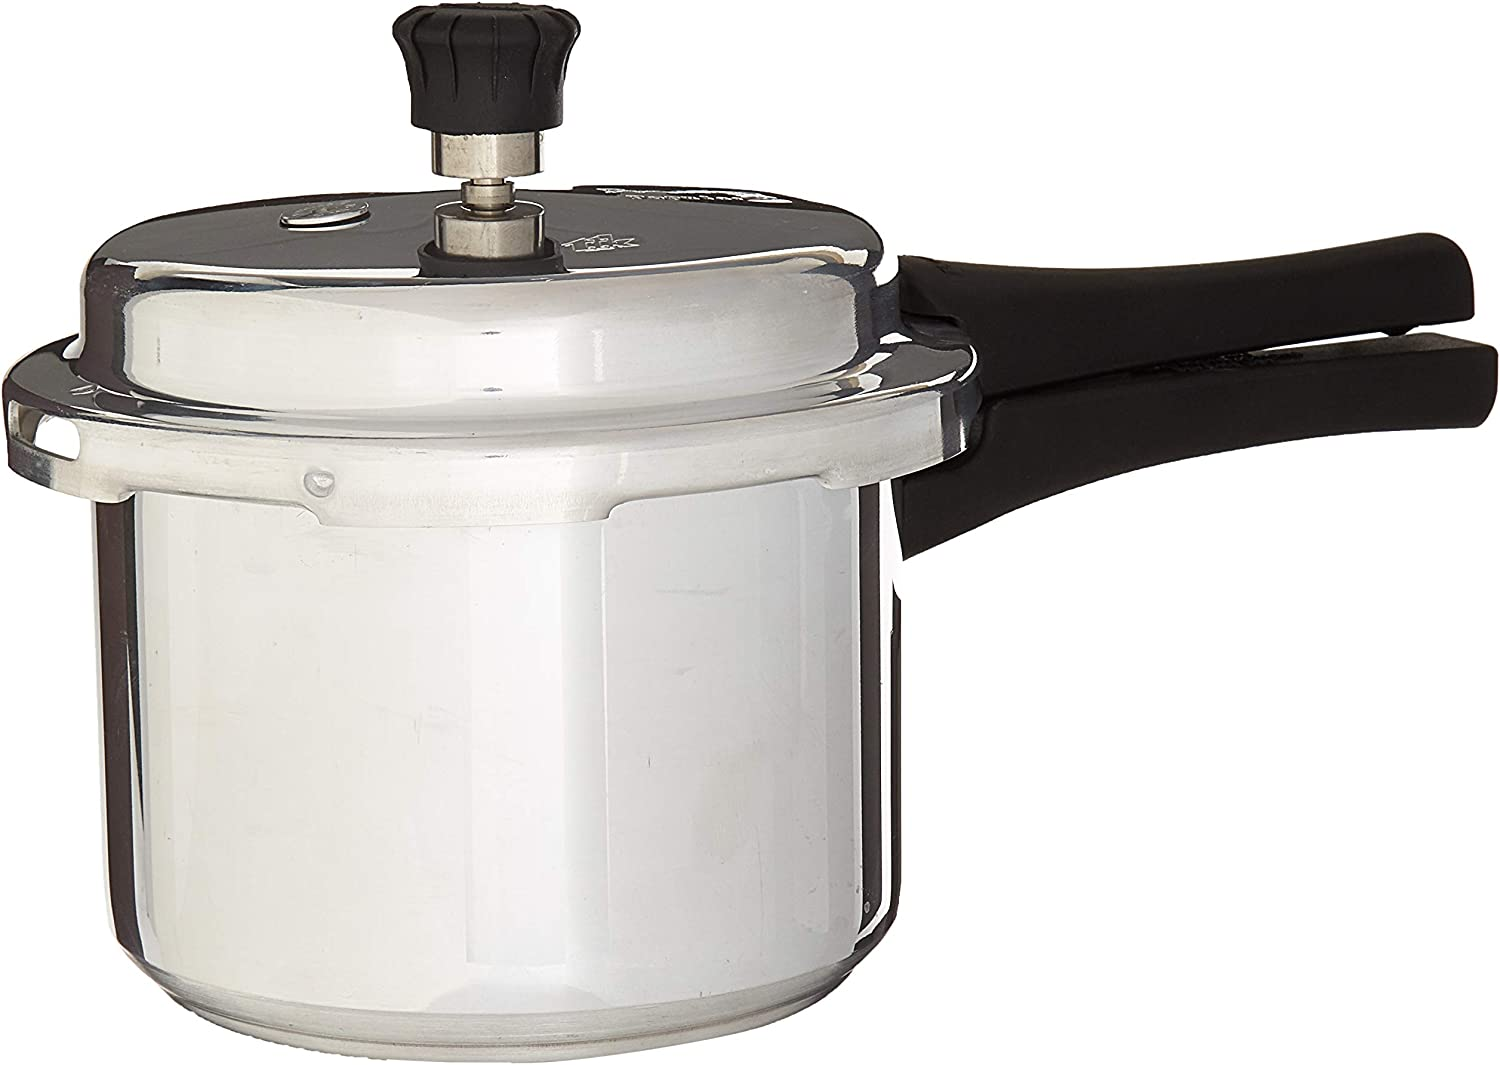 Prestige Popular Plus Induction Base Aluminum Pressure Cooker, 3 Litres, Silver